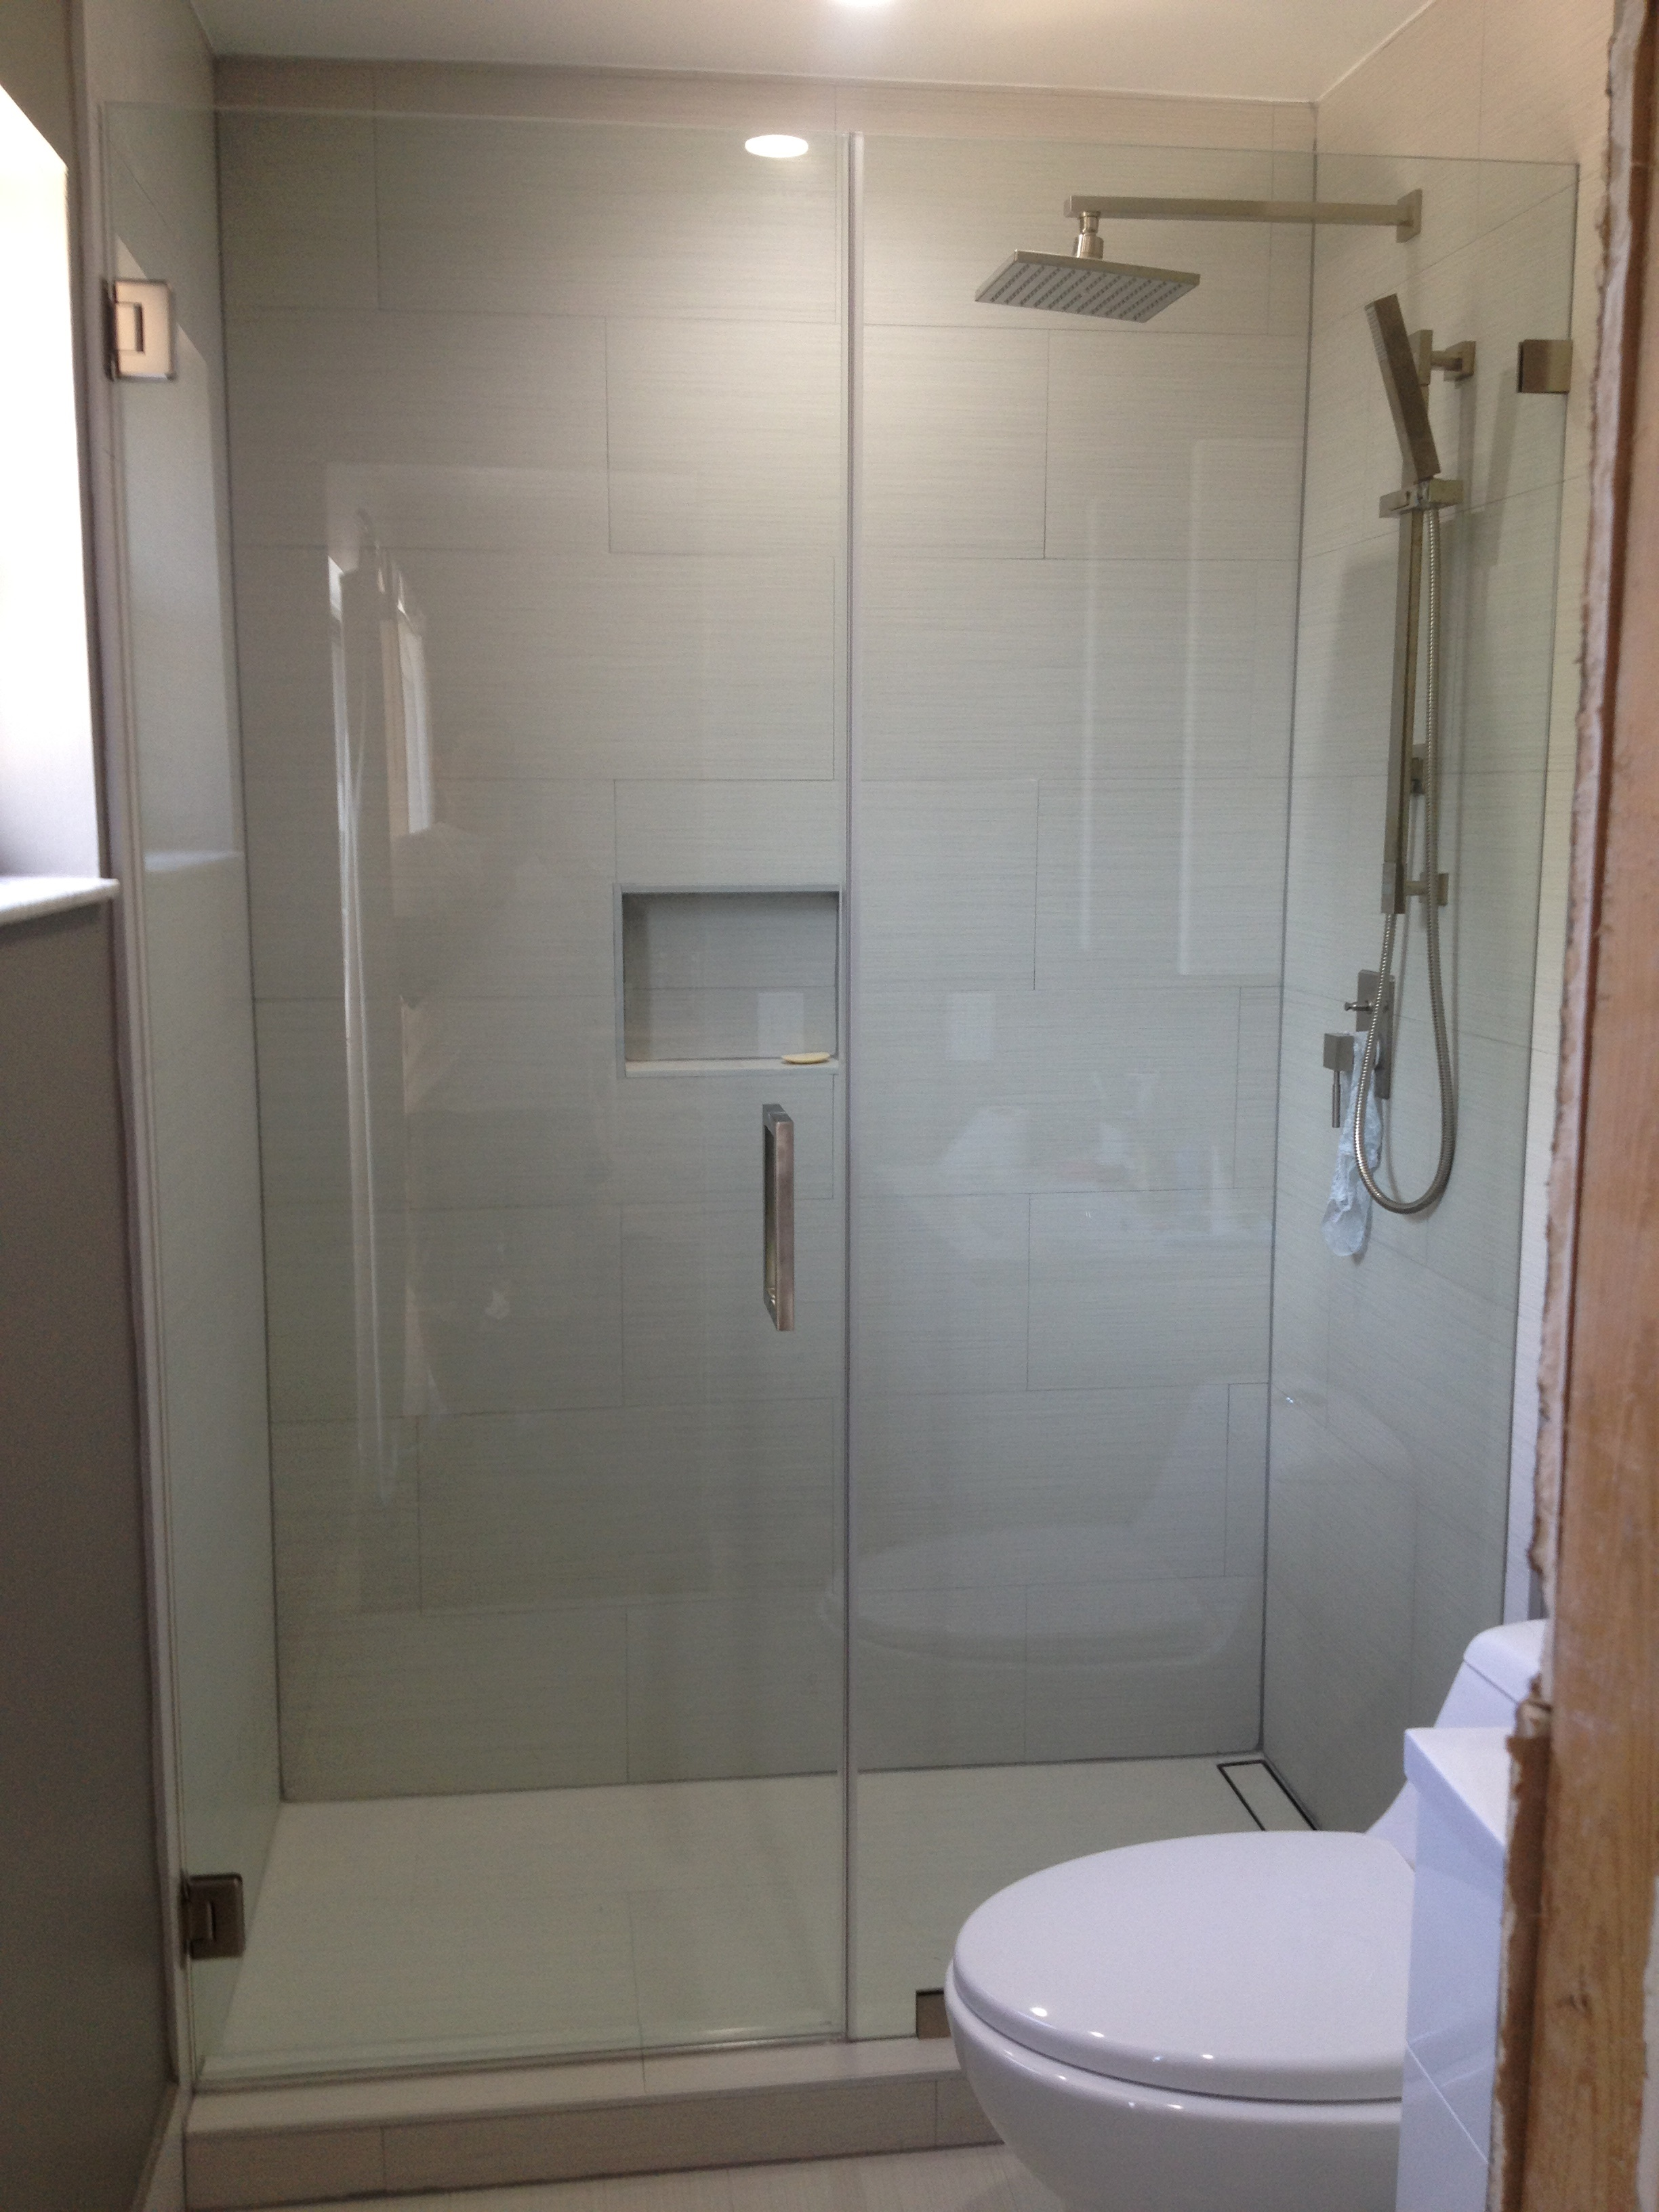 & Elegant Shower Doors 343B Main St Hackensack NJ 07601 - YP.com